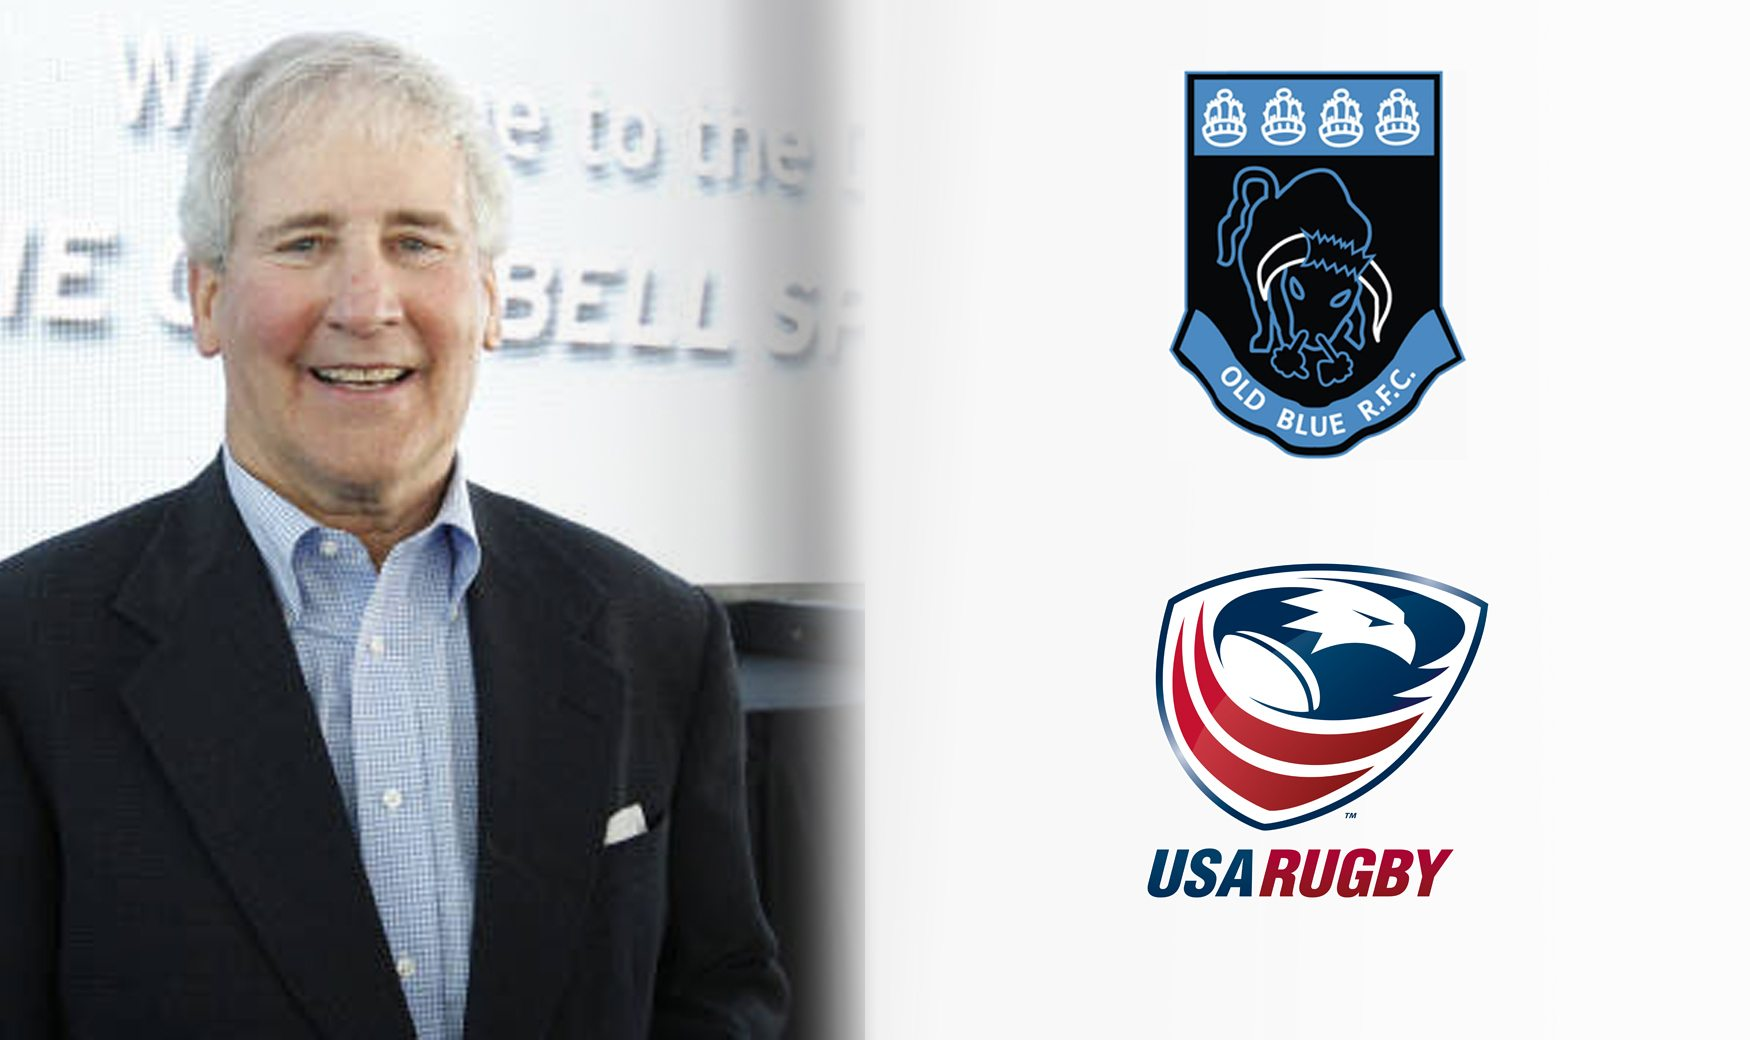 USA Rugby loses a giant in Bill Campbell, founding member of Old Blue